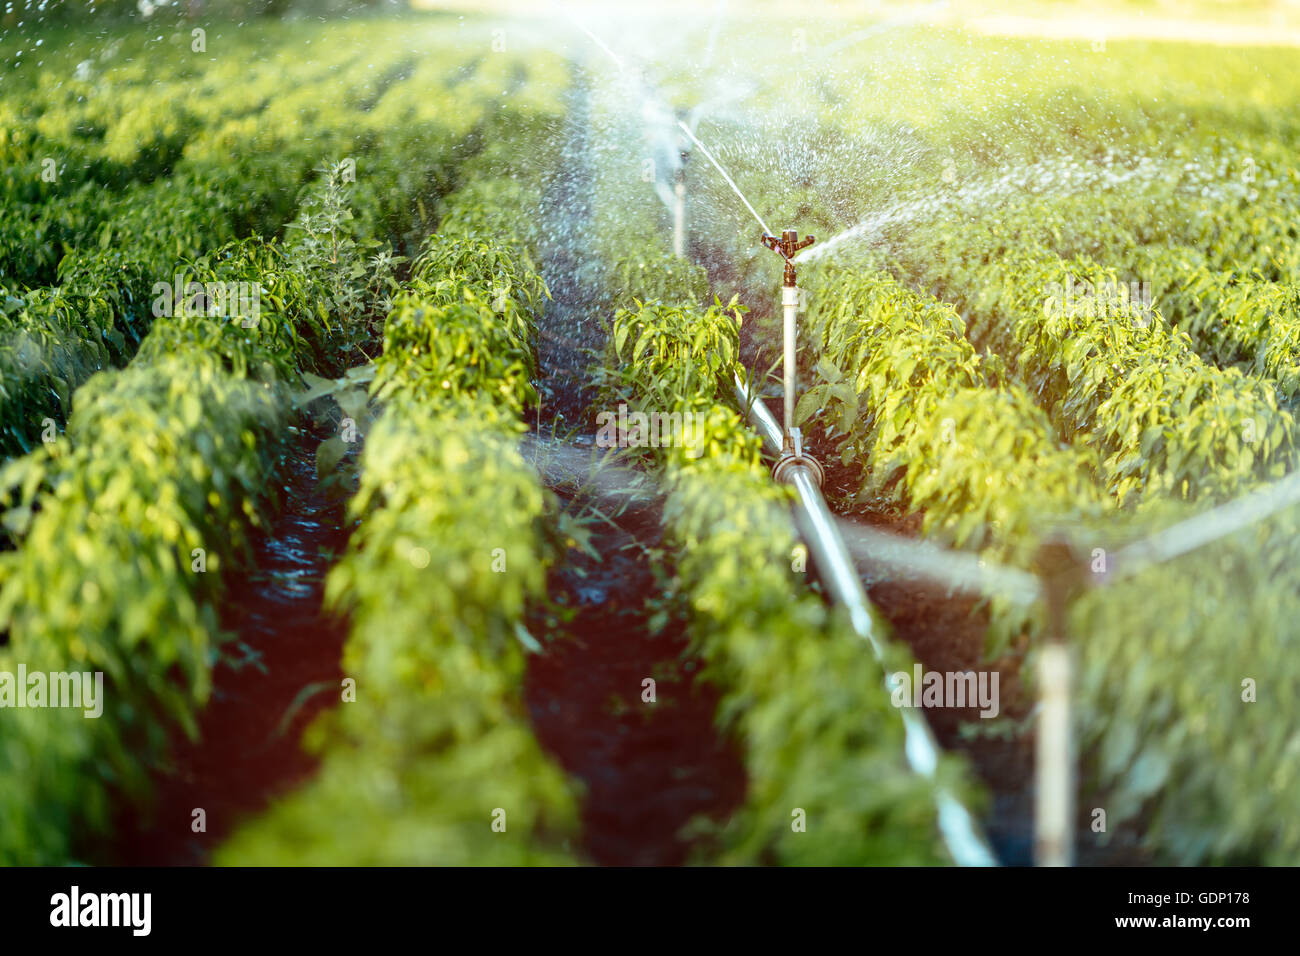 Irrigation system in function watering agricultural plants - Stock Image